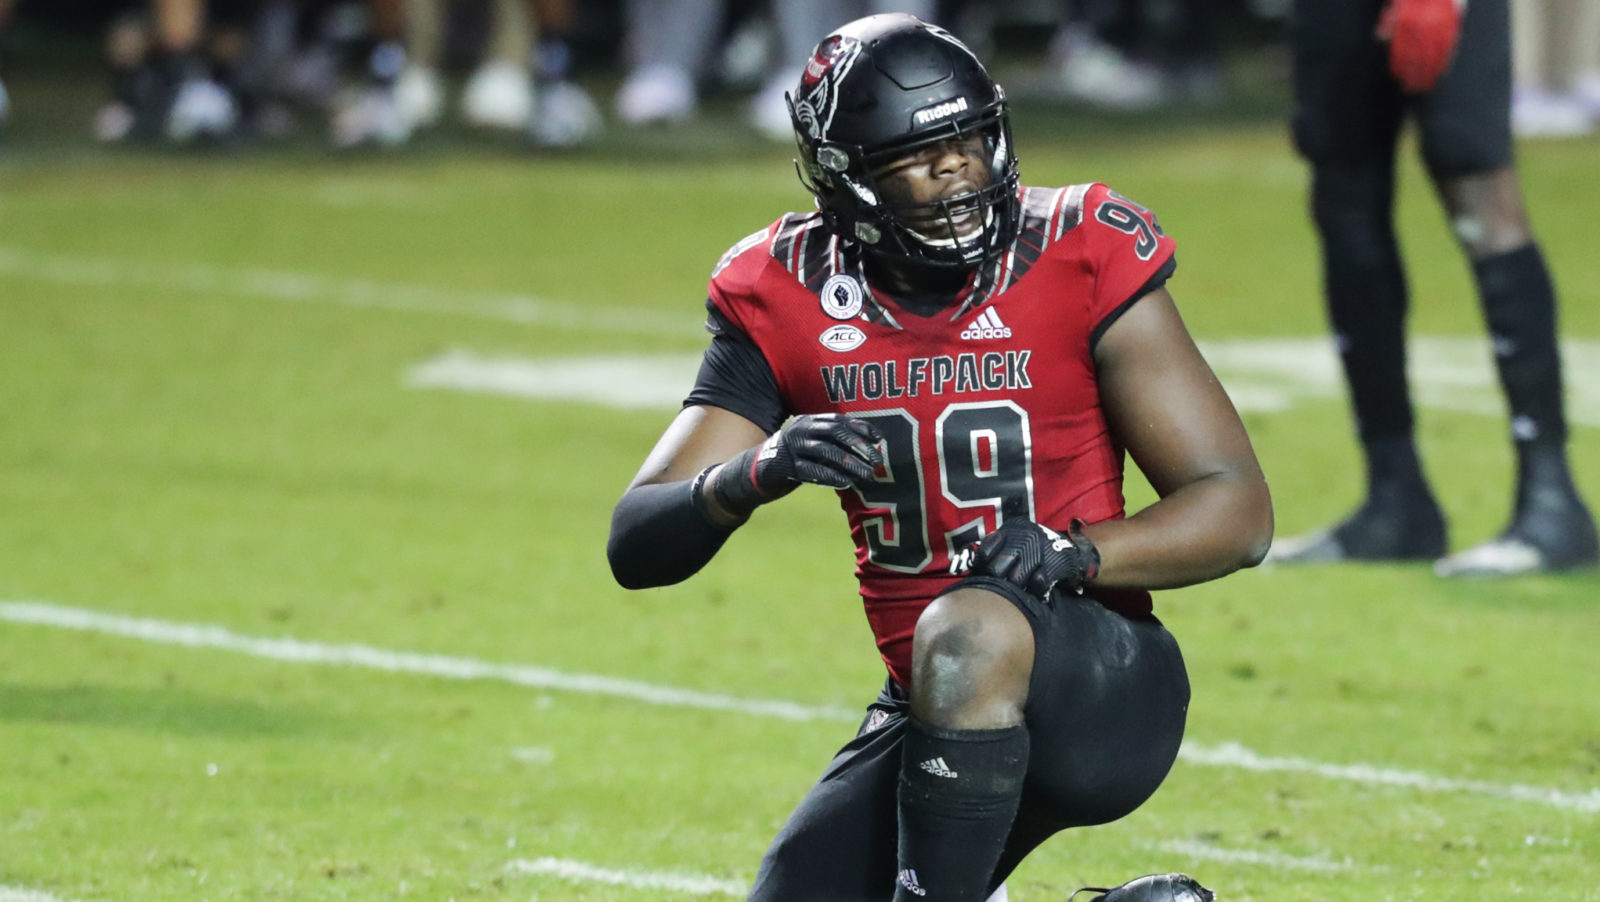 Canadian Daniel Joseph finding groove in first season at NC State - CFL.ca